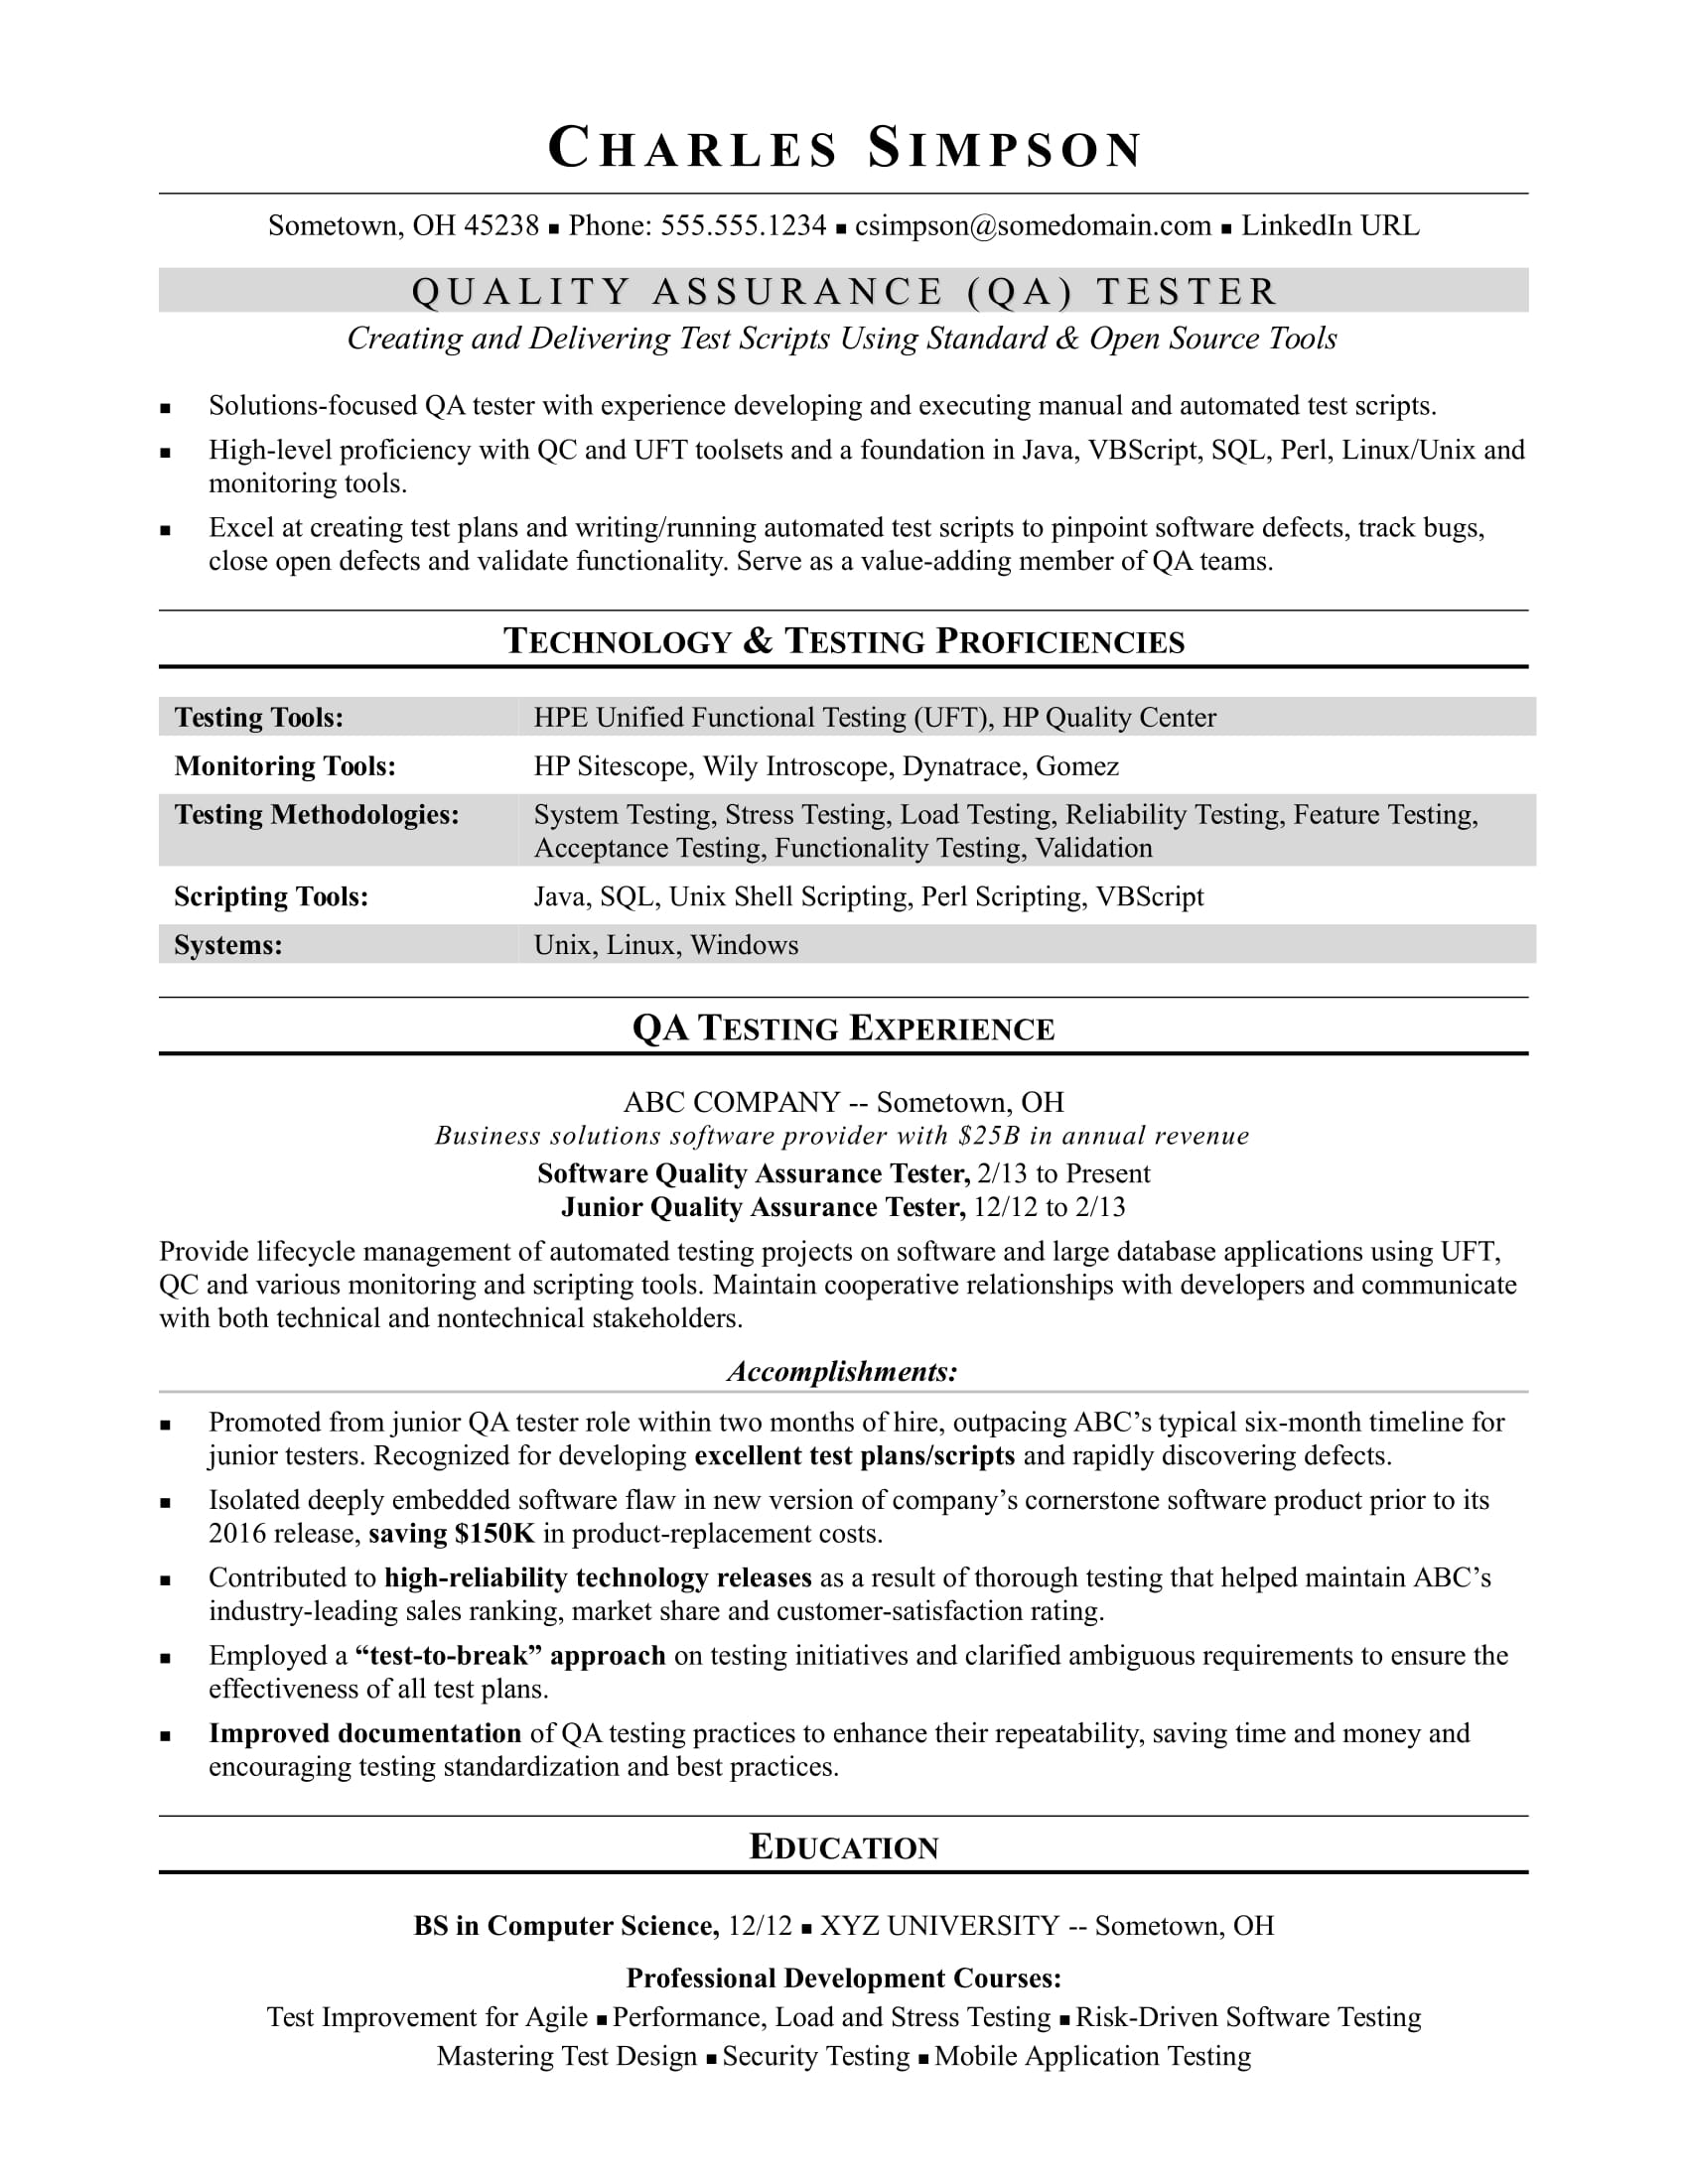 Sample Resume for a Midlevel QA Software Tester | Monster.com